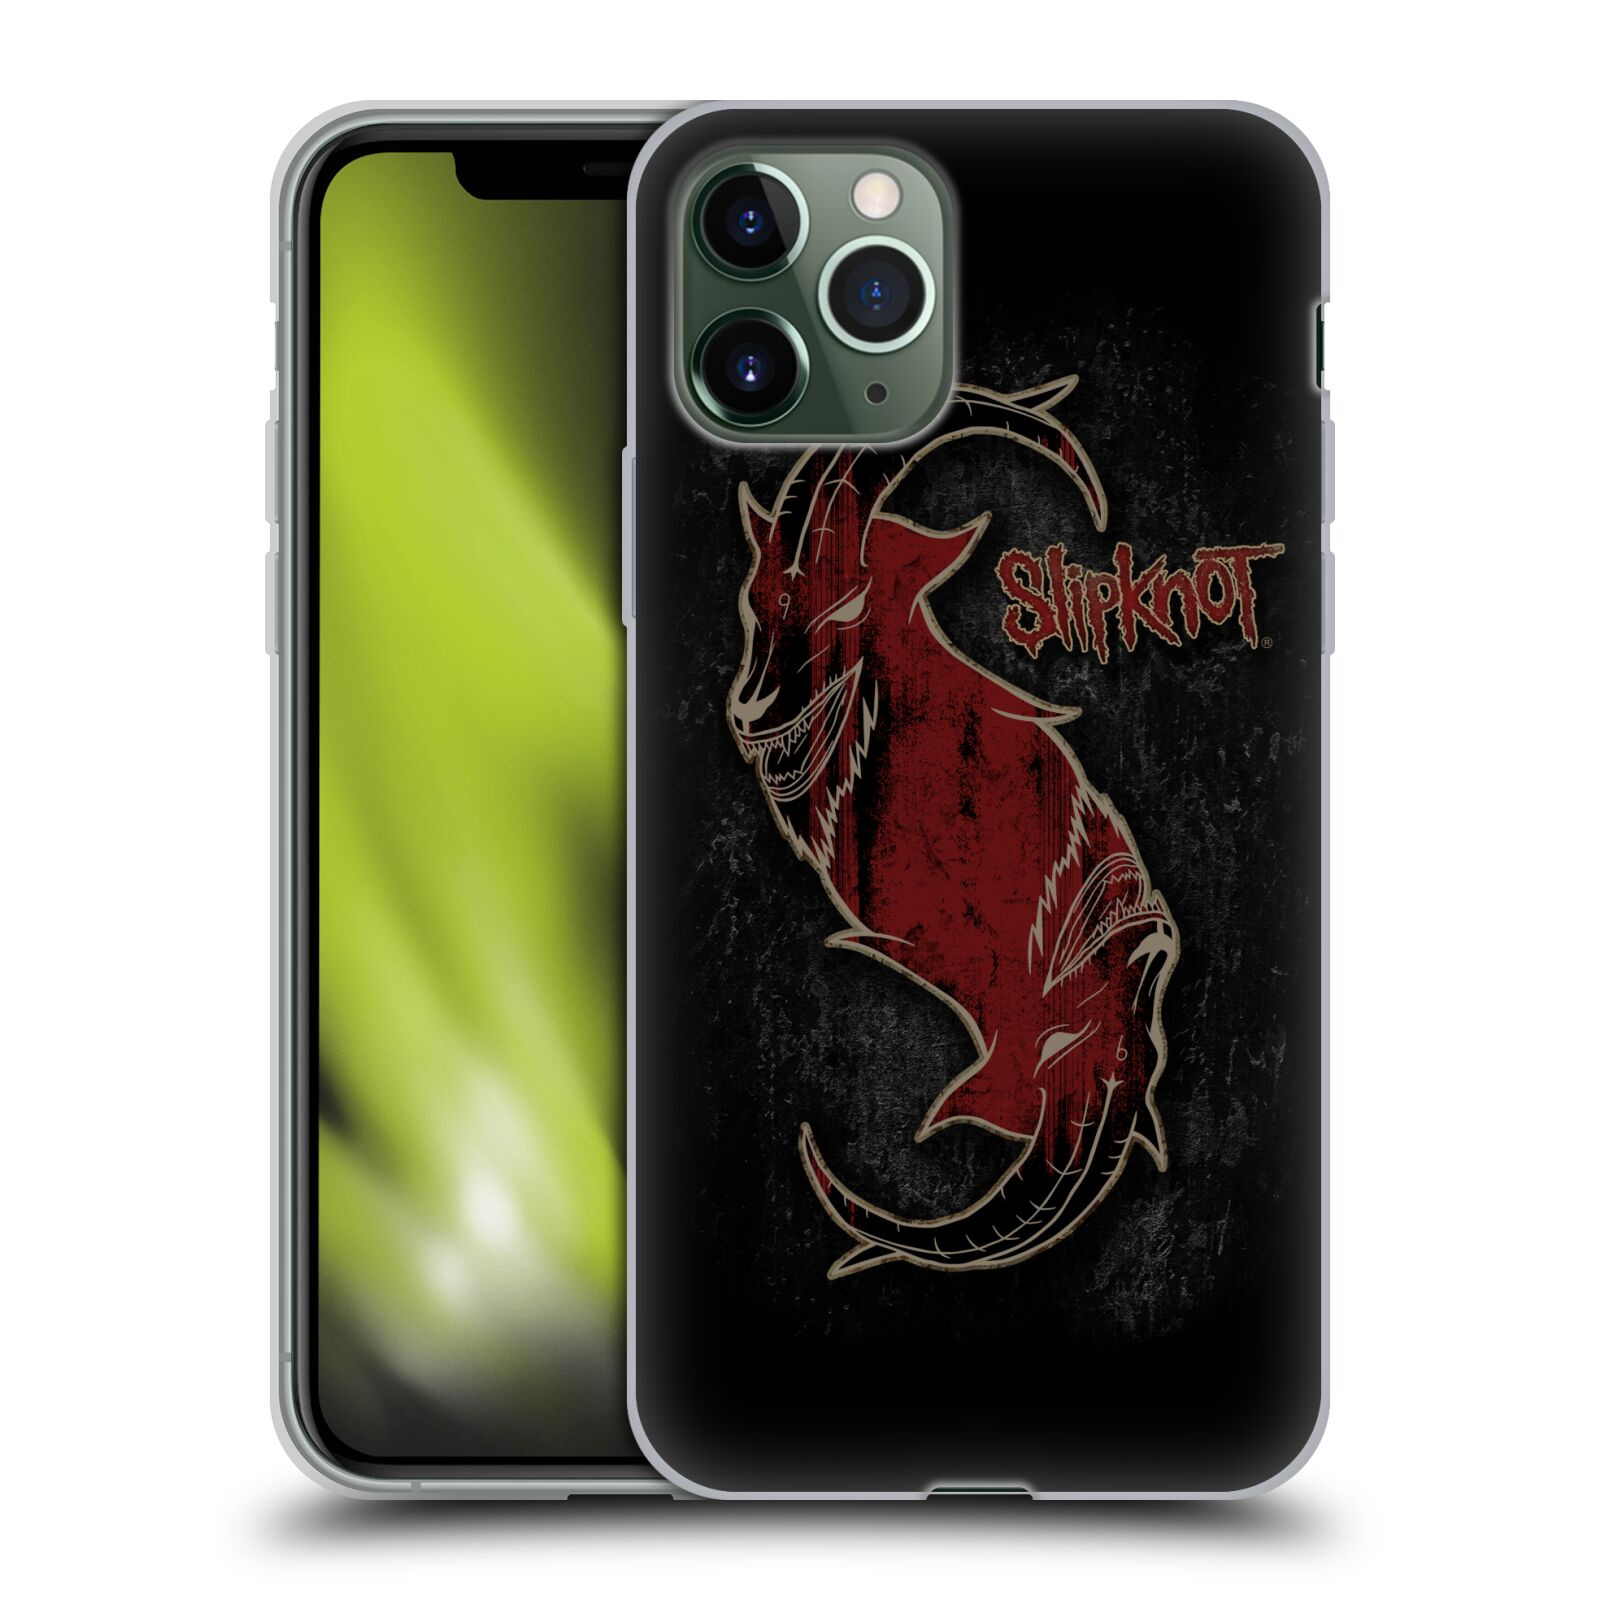 gucci iphone xs max | Silikonové pouzdro na mobil Apple iPhone 11 Pro - Head Case - Slipknot - Rudý kozel